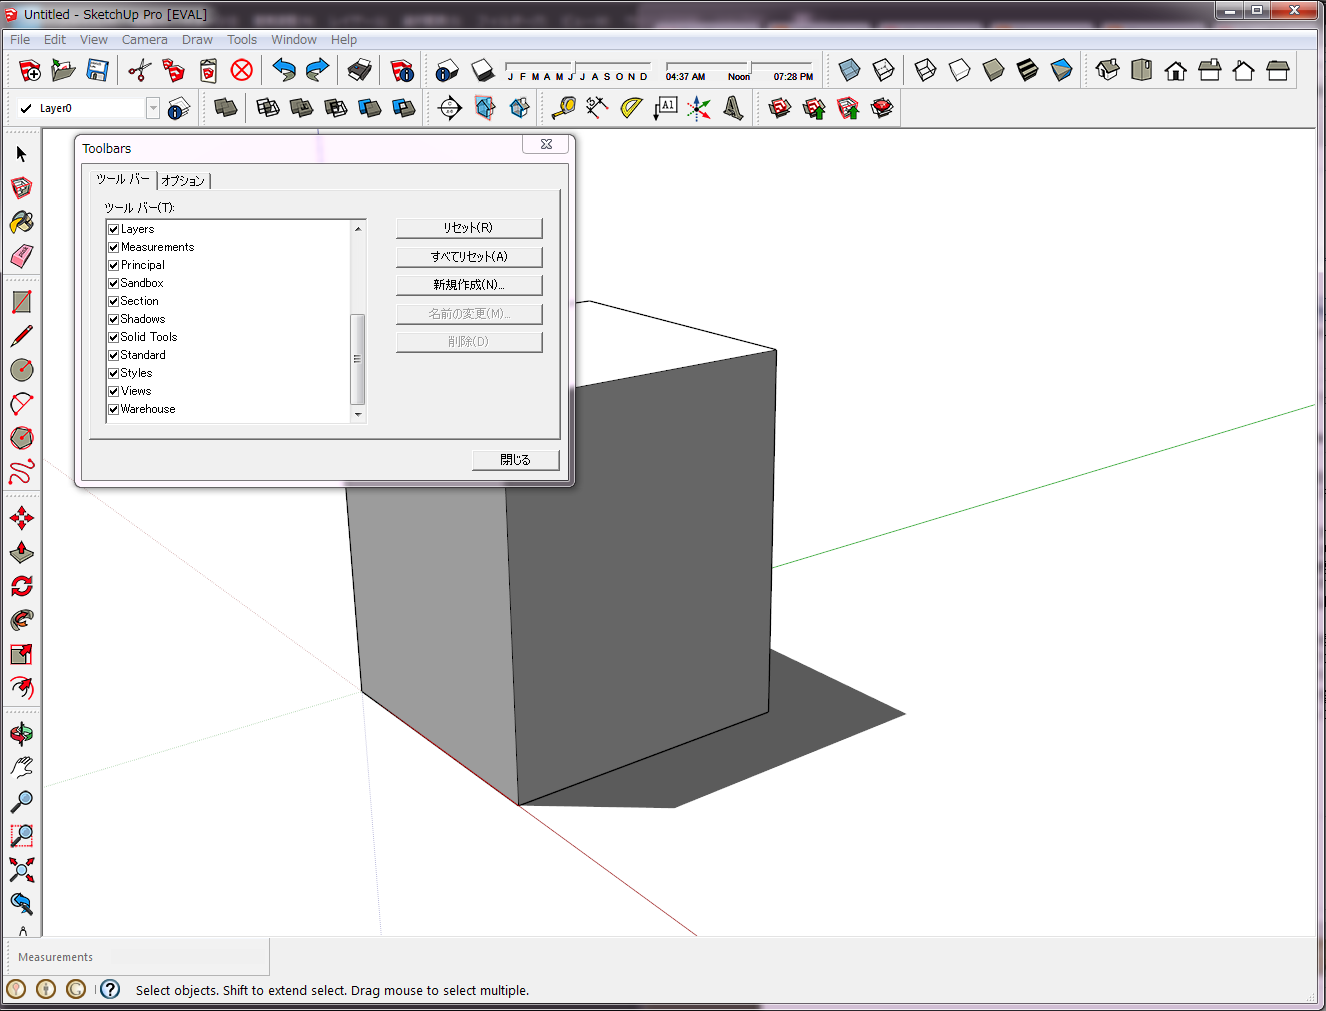 D project sketchup pro 2013 for Sketchup 2013